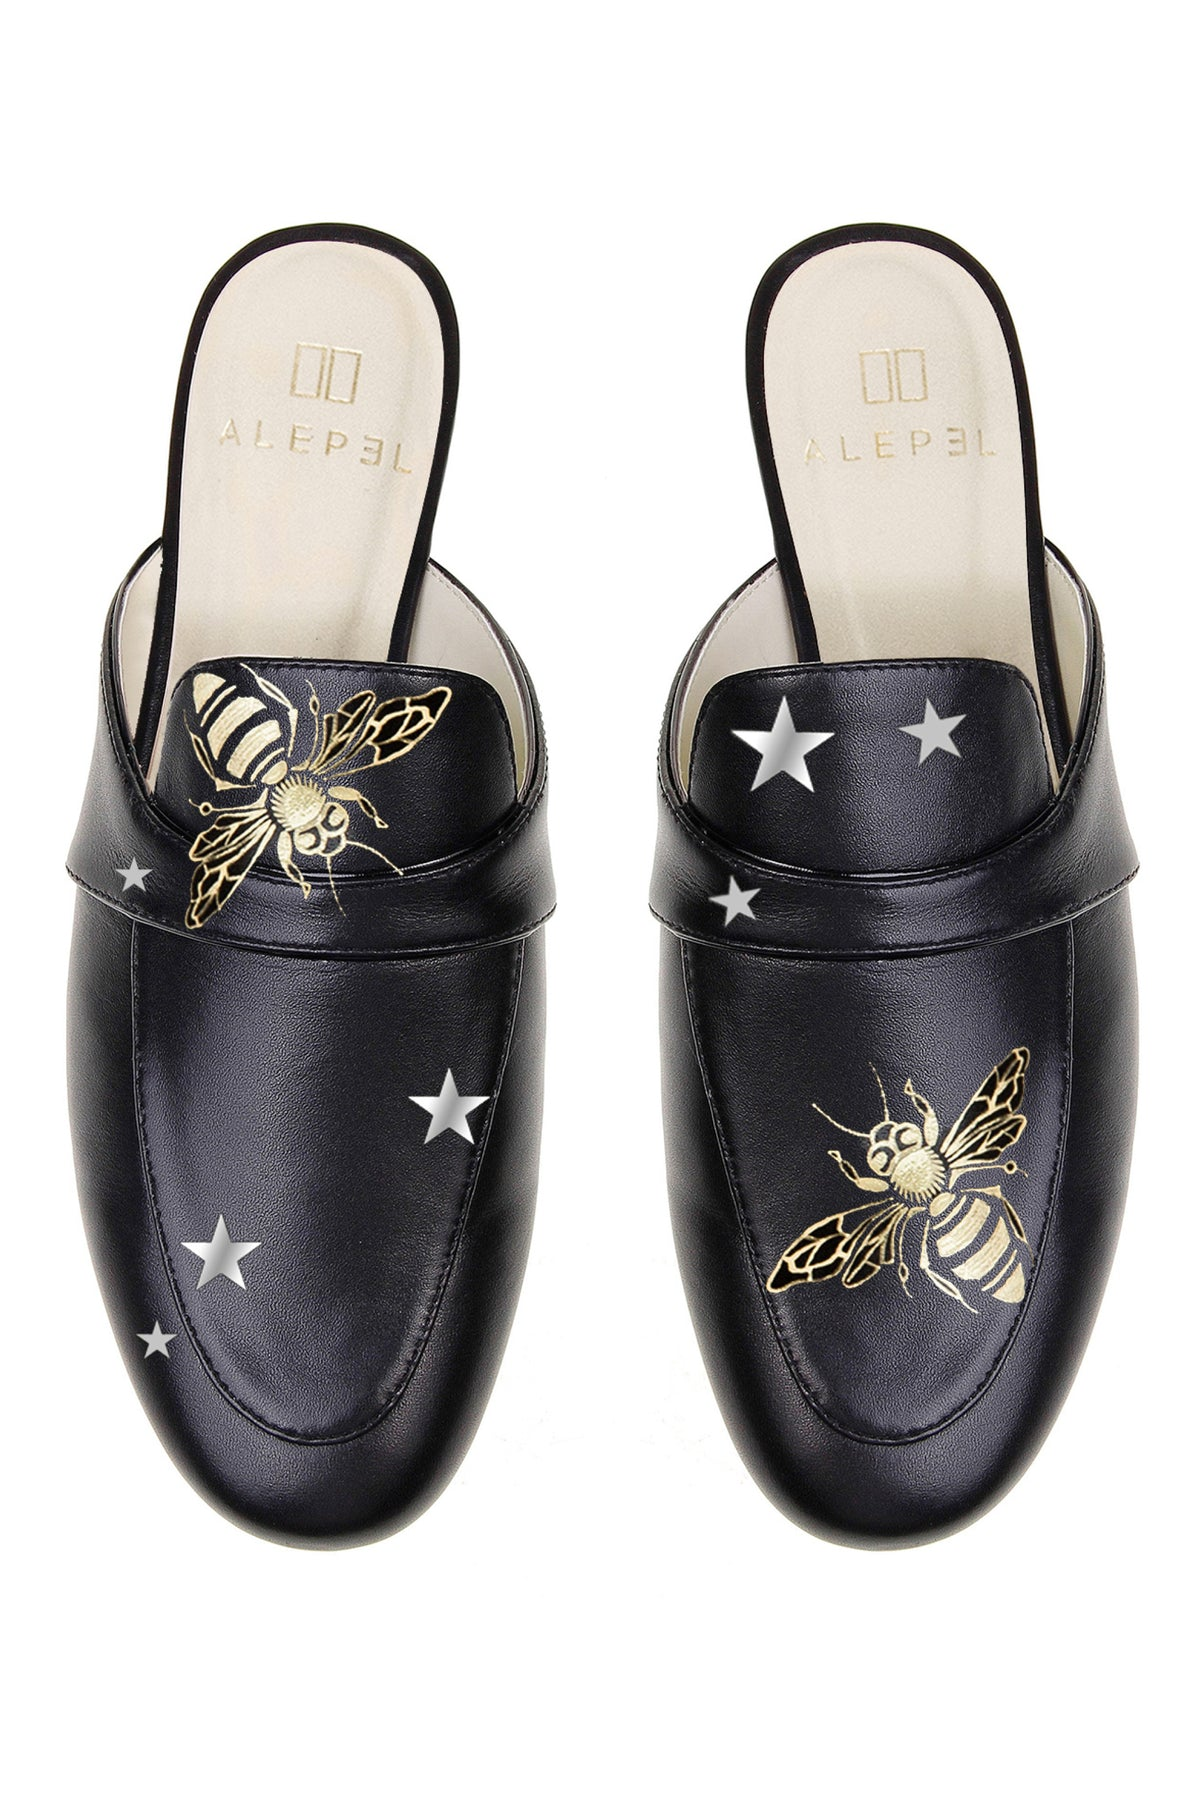 Queen Bee and Stars Mule